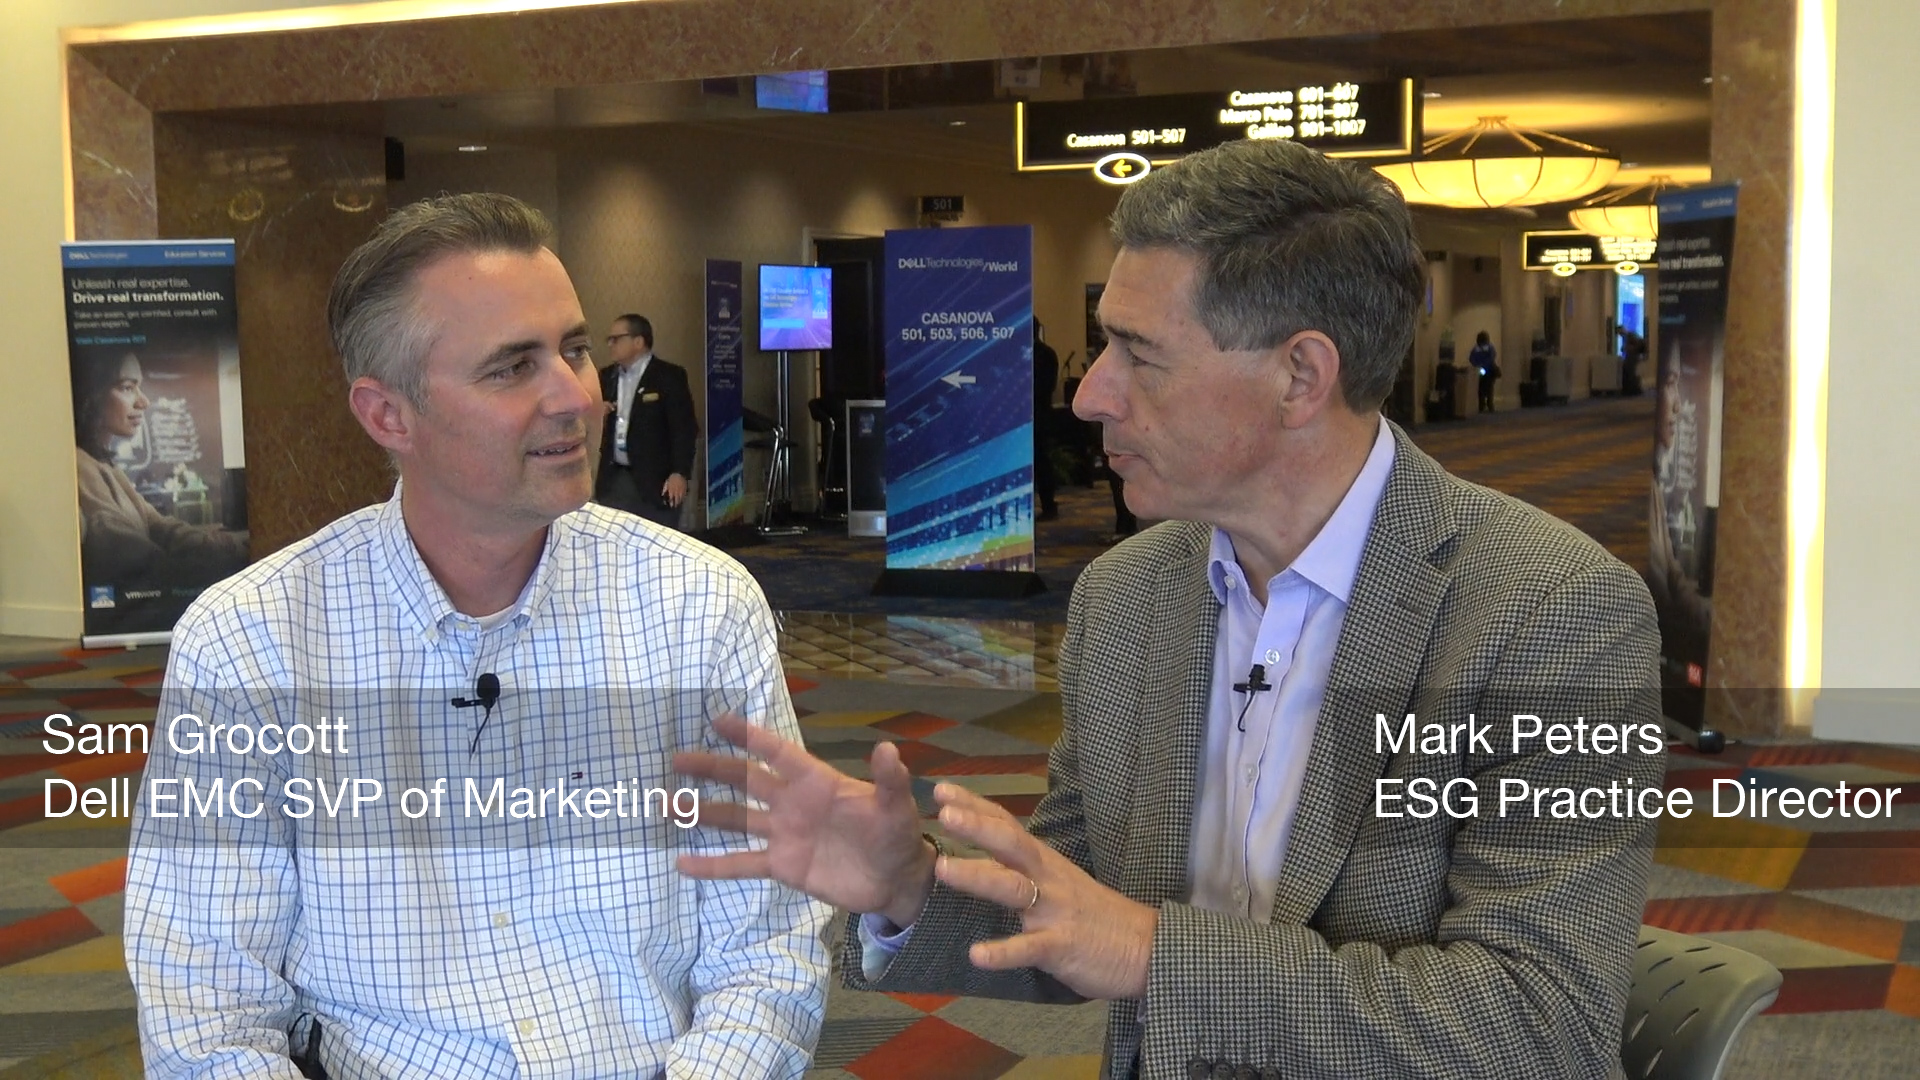 In Conversation with Sam Grocott of Dell at DTW (Video)